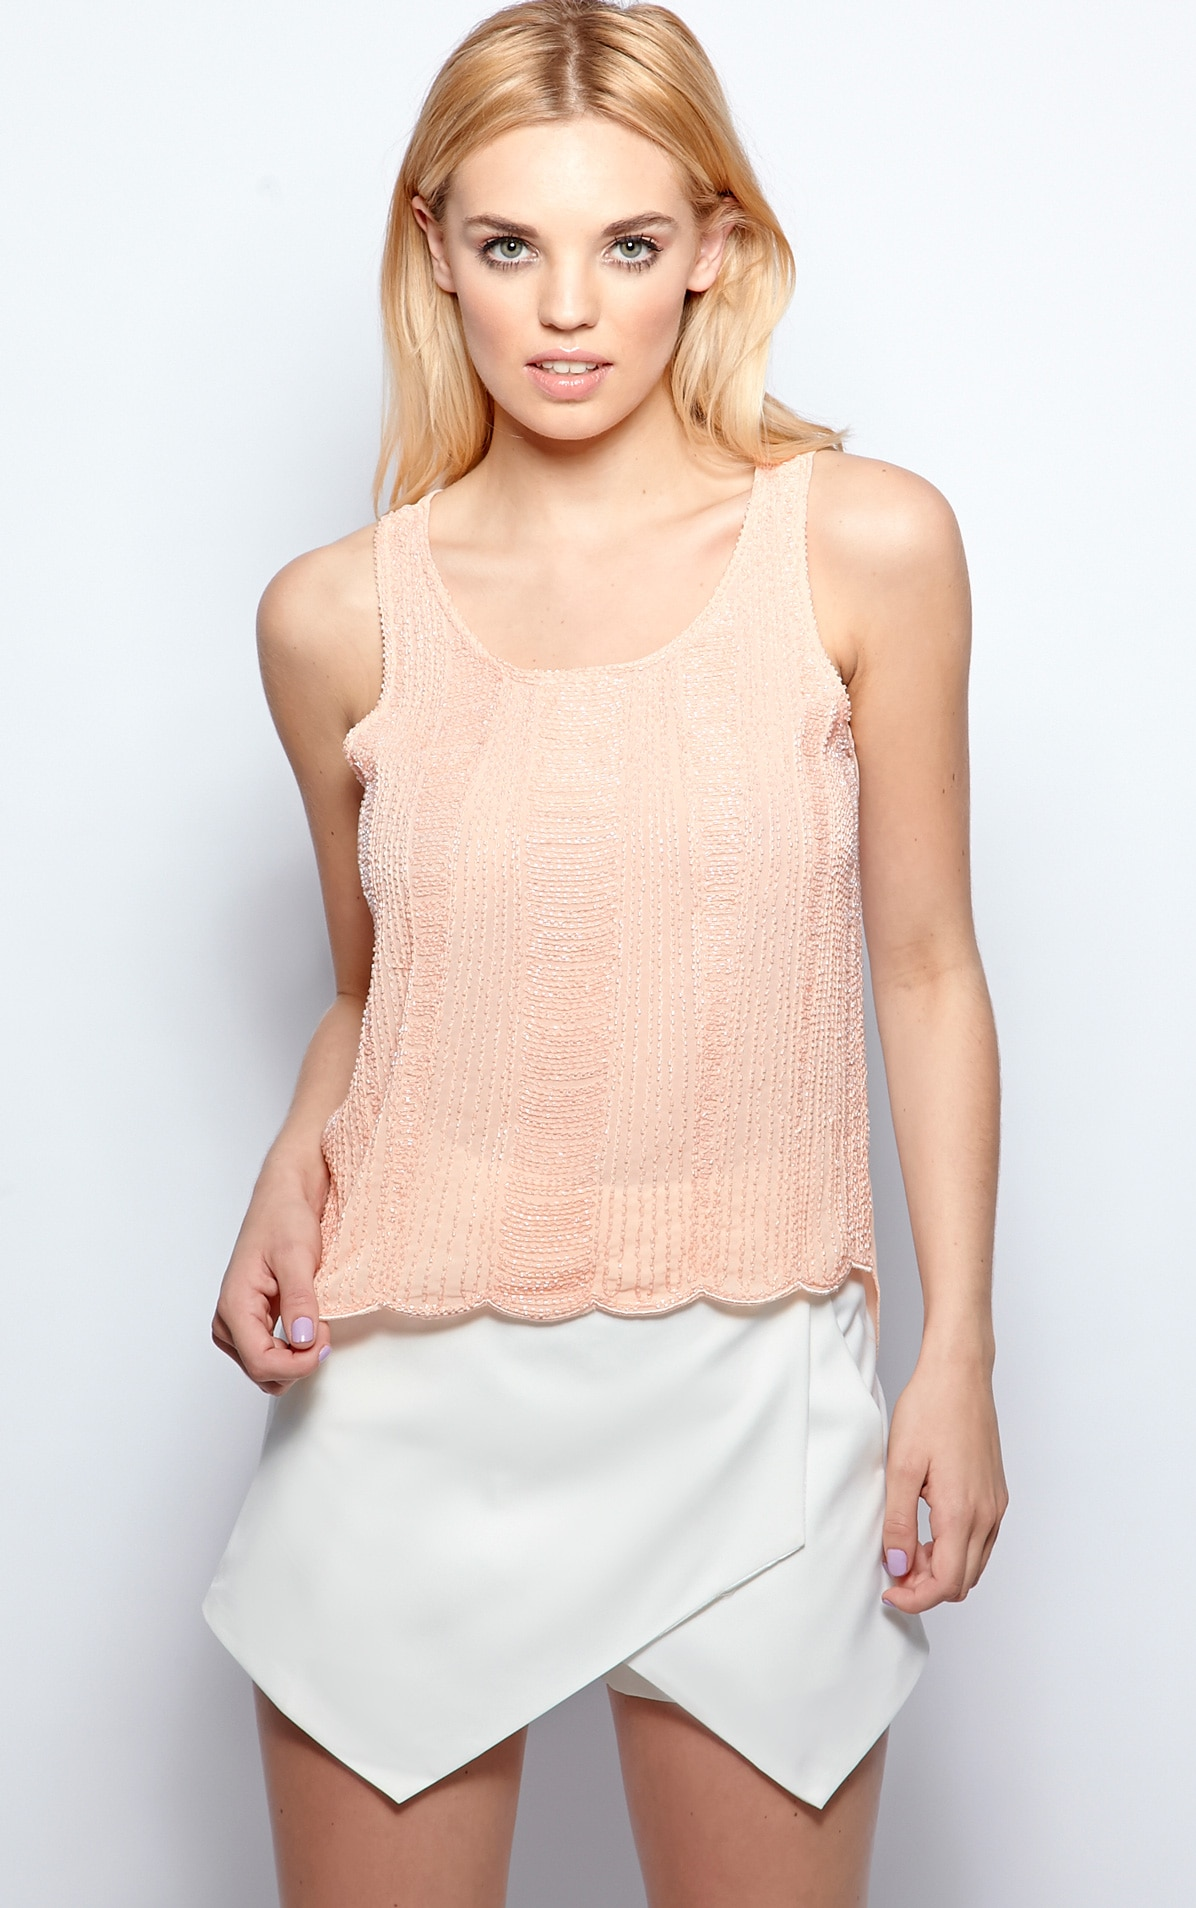 Raine Peach Embellished Cami  1